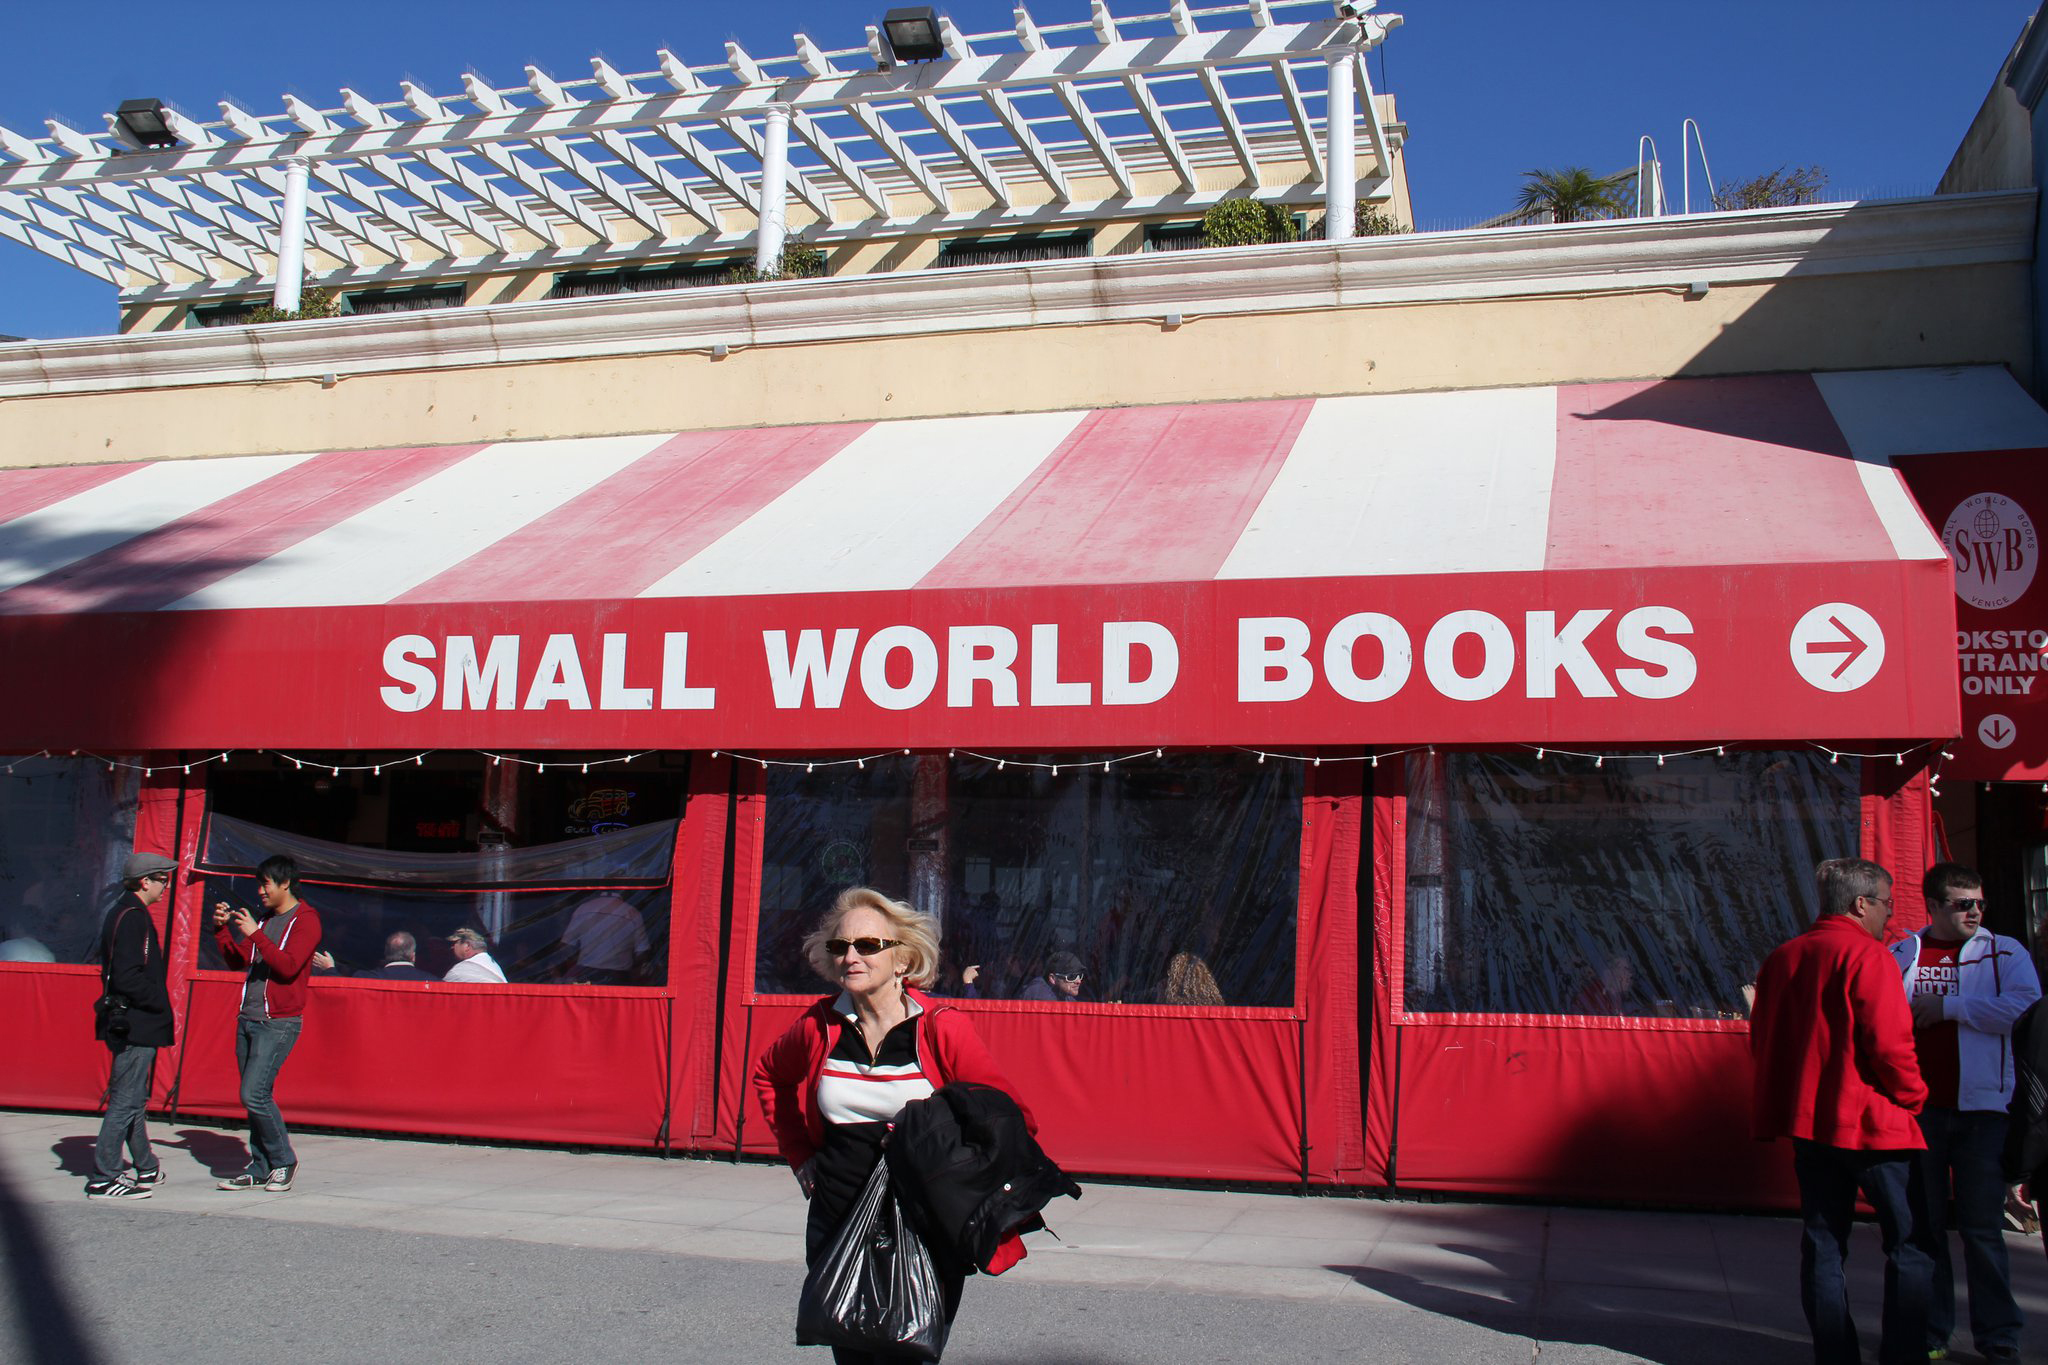 Small World Books